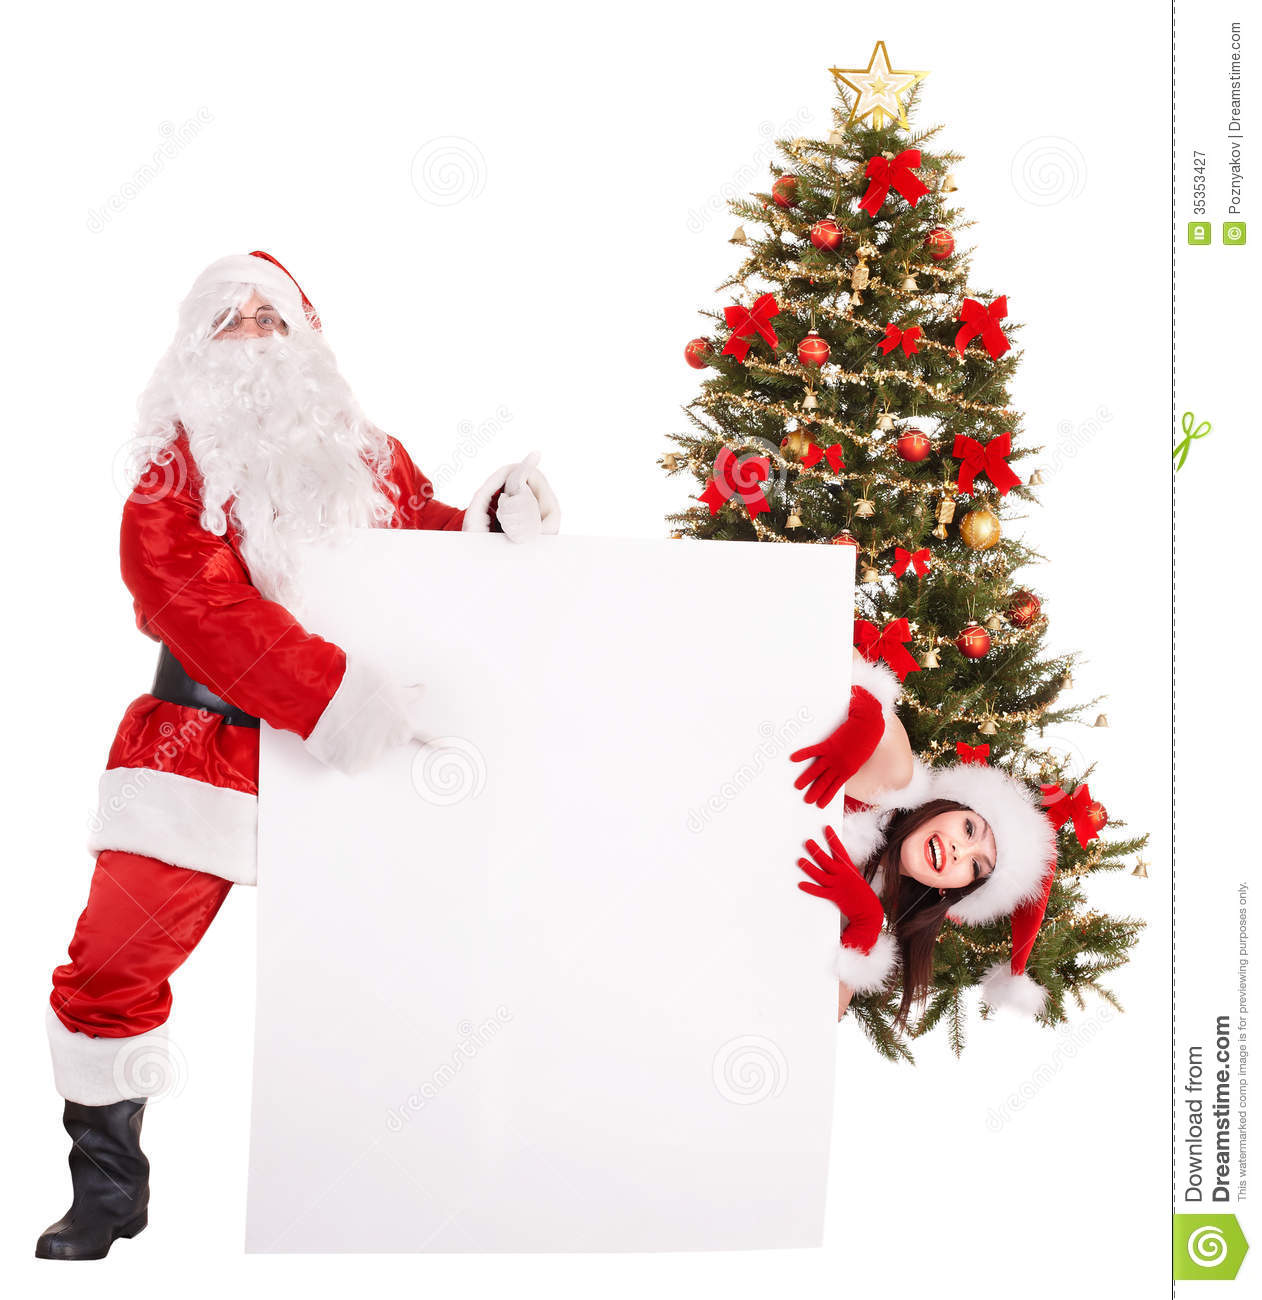 Santa claus and girl holding banner by christmas tree